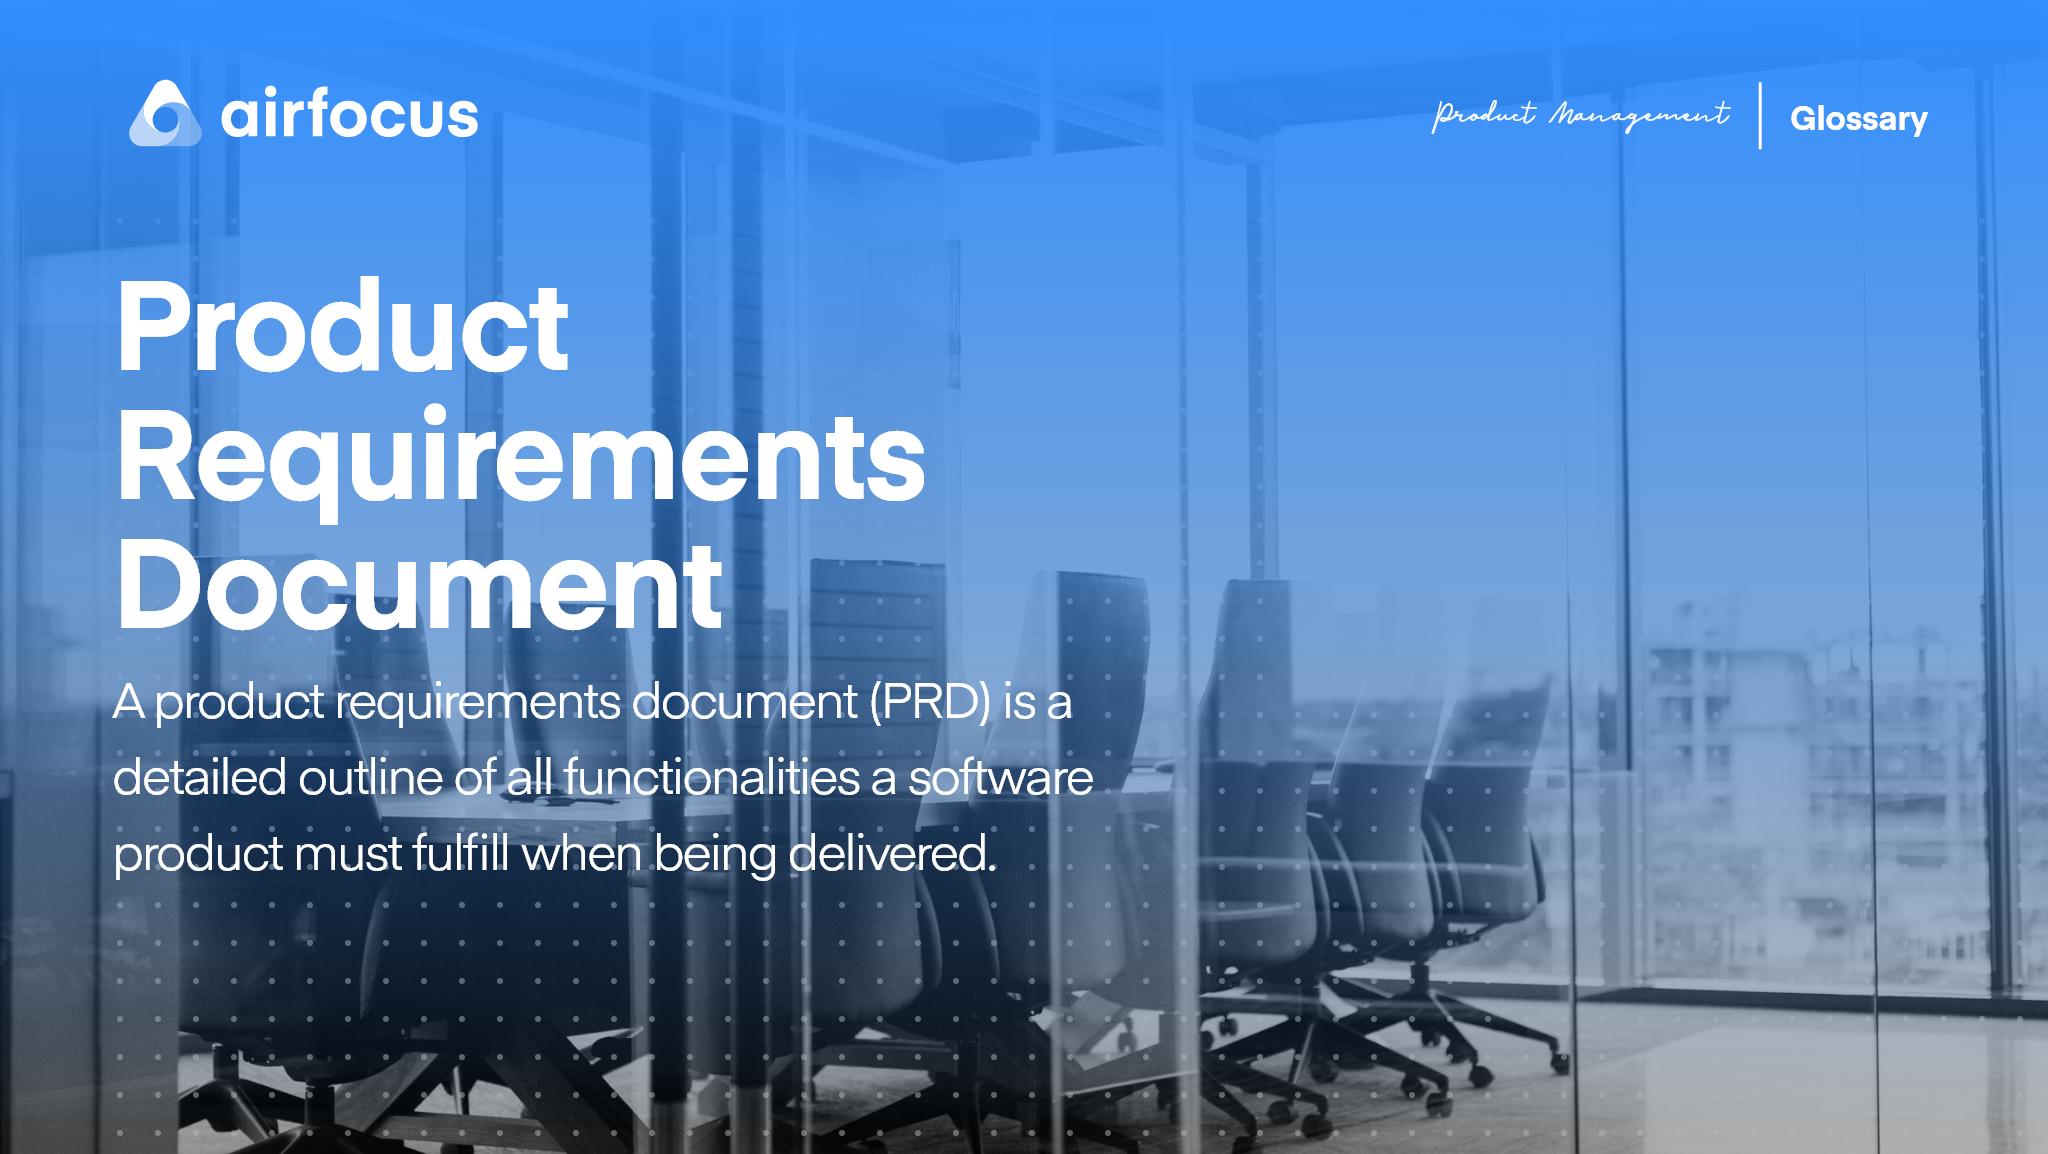 What is Product Requirements Document